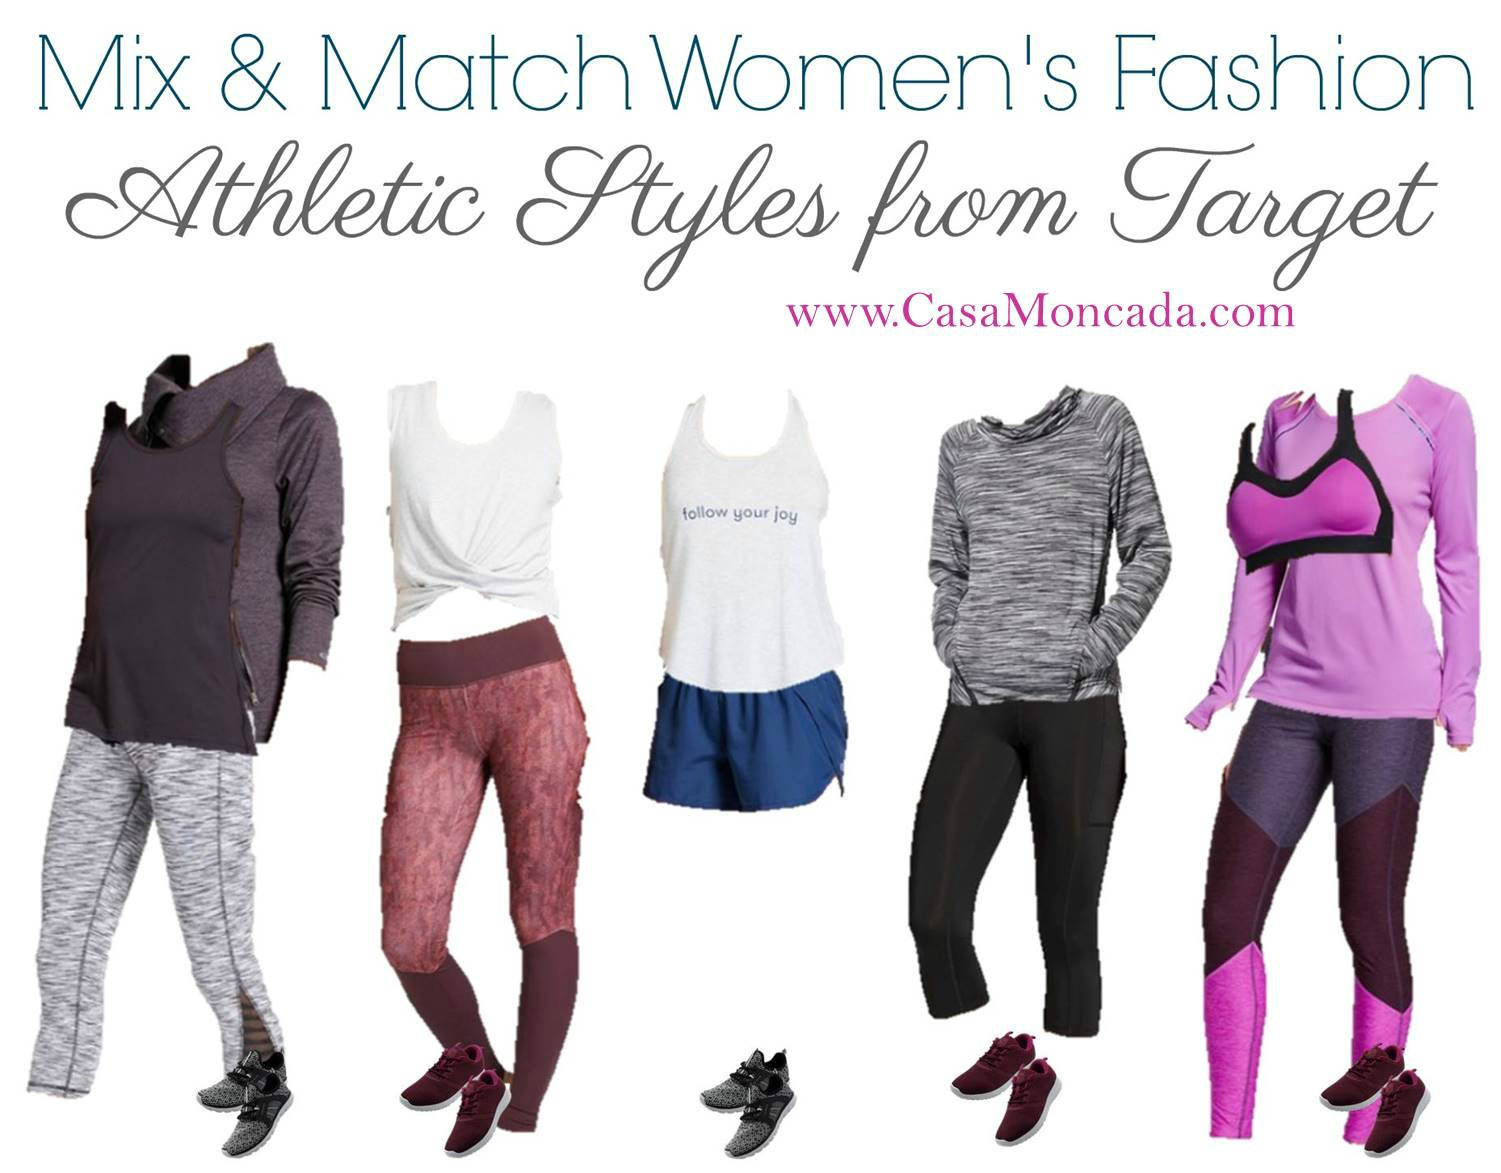 affordable workout clothes from Target